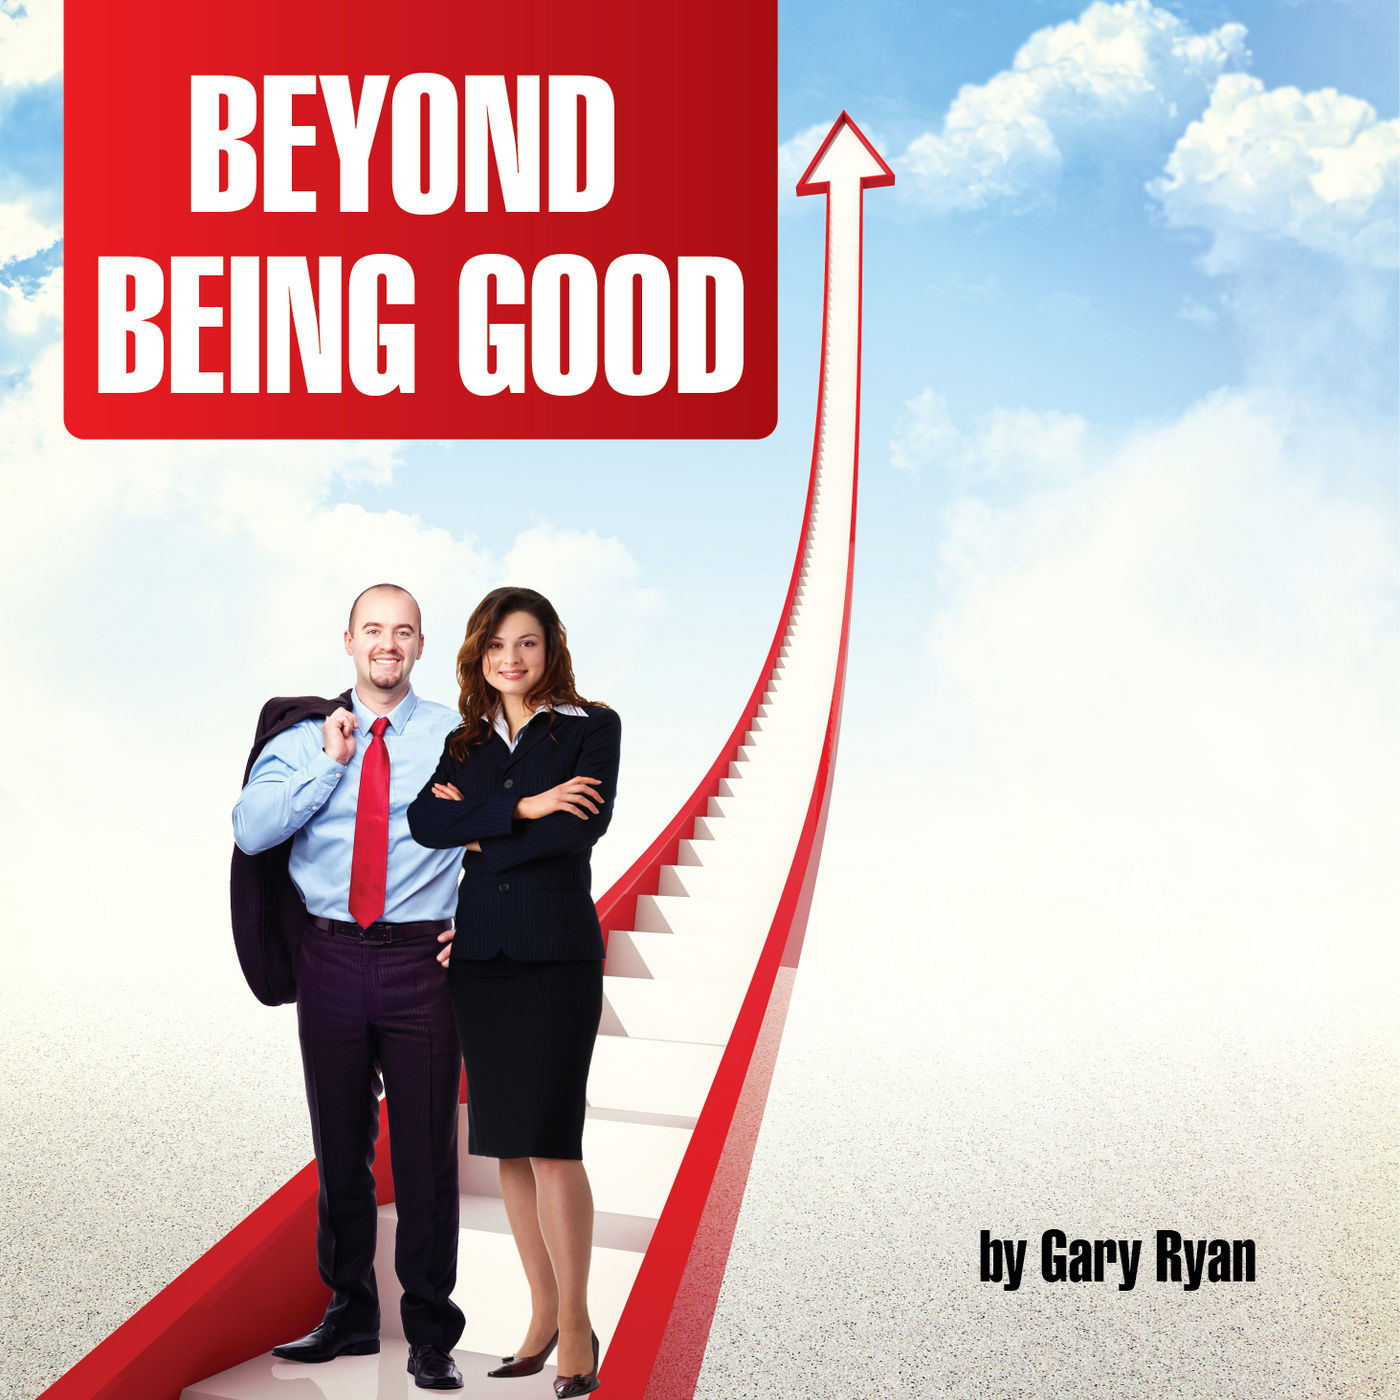 Gary Ryan Moving Beyond Being Good